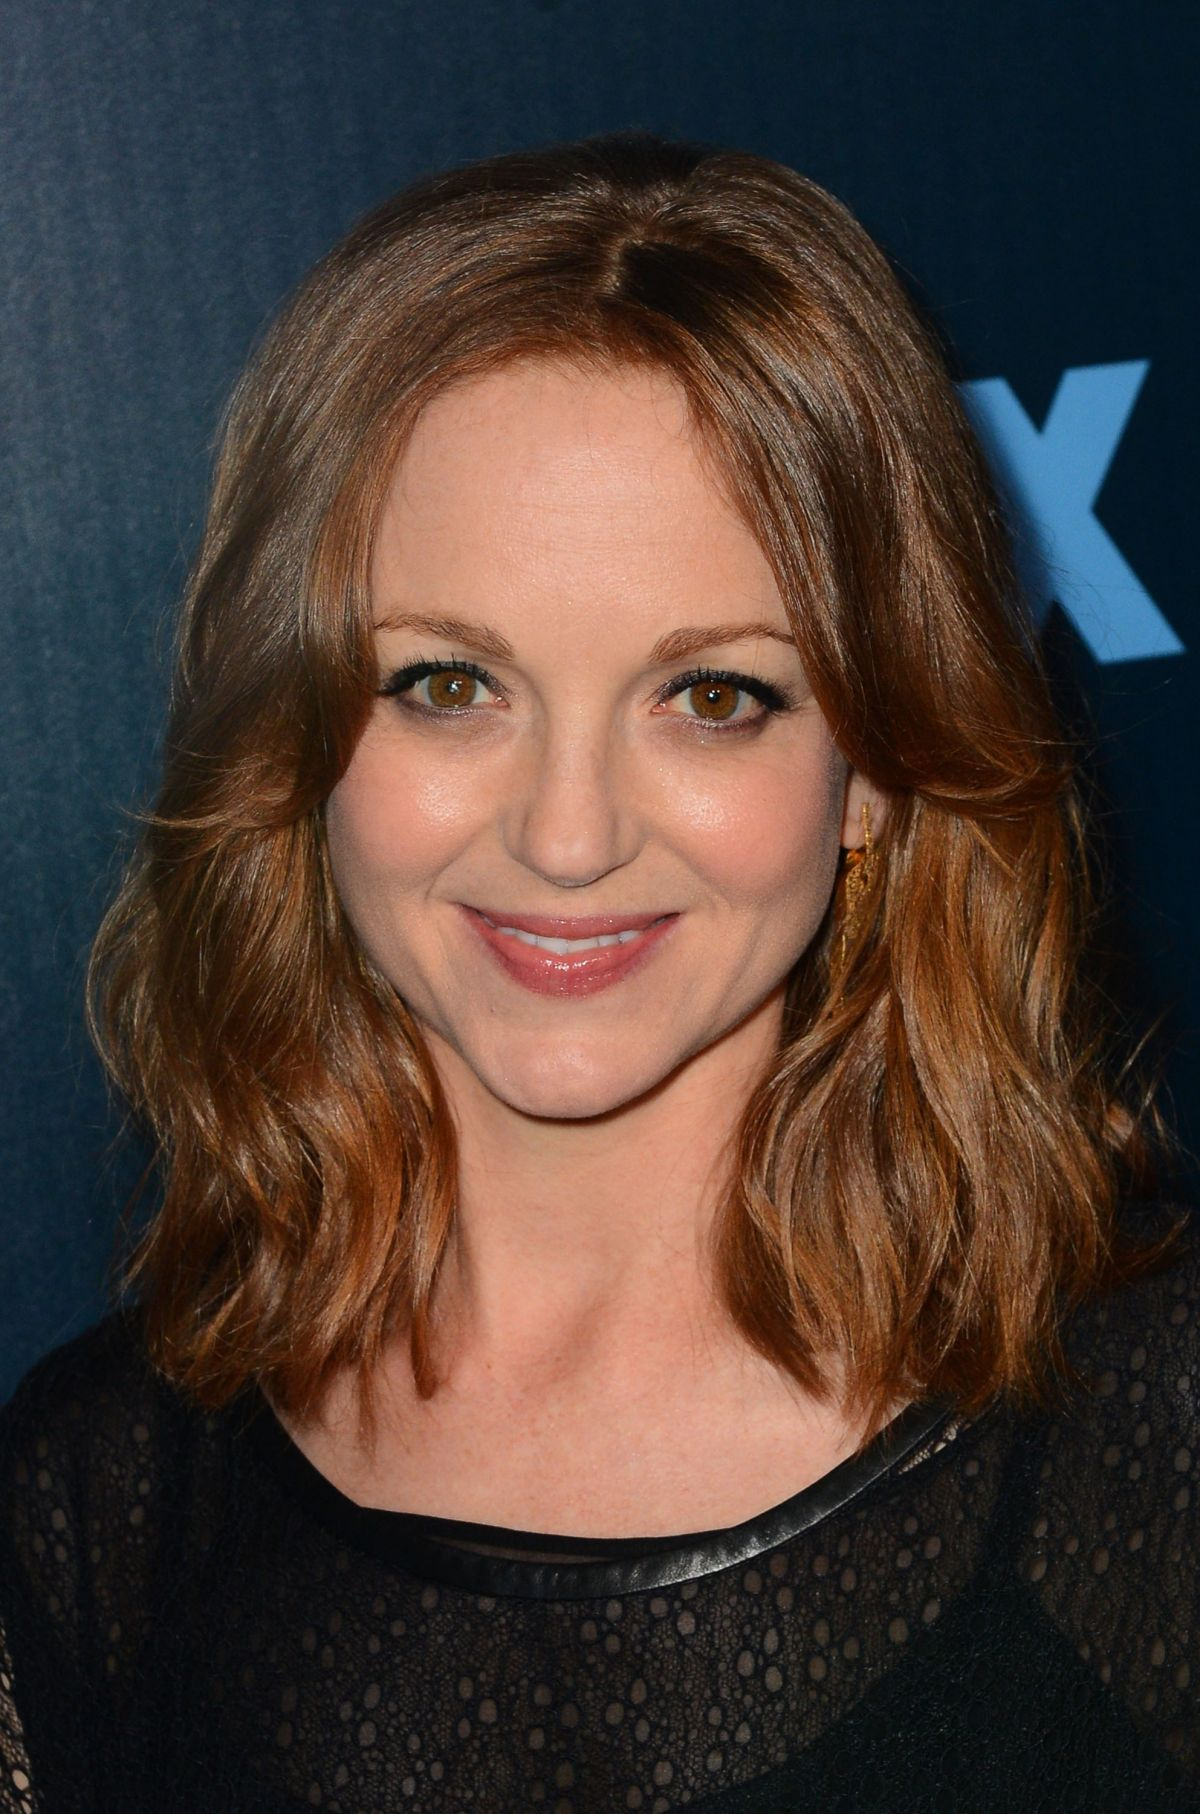 JAYMA MAYS at Glee 100th Episode Celebration in Los Angeles